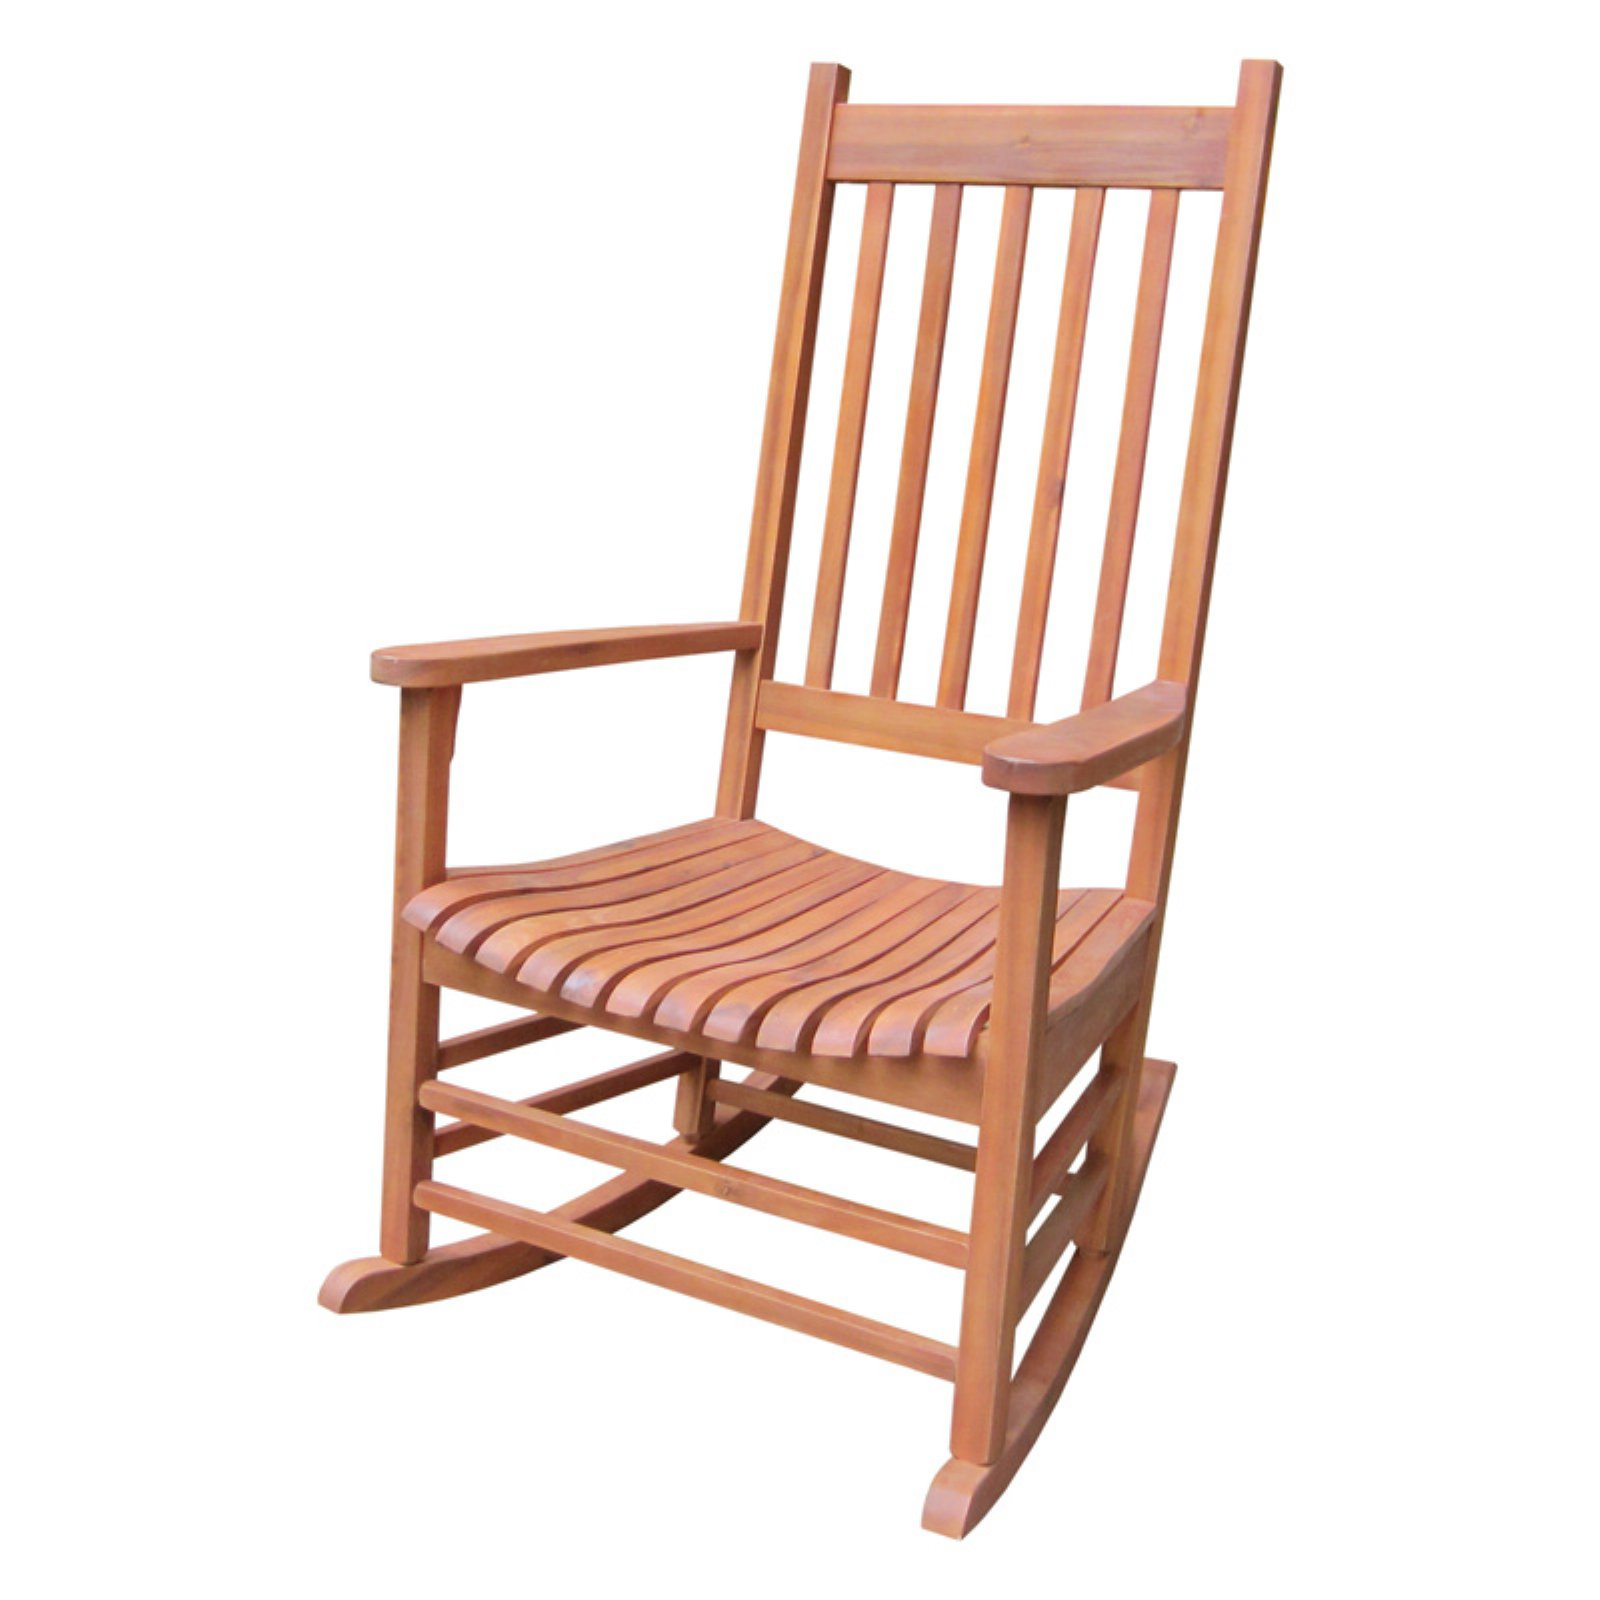 Outdoor International Concepts Solid Wood Porch Rocker